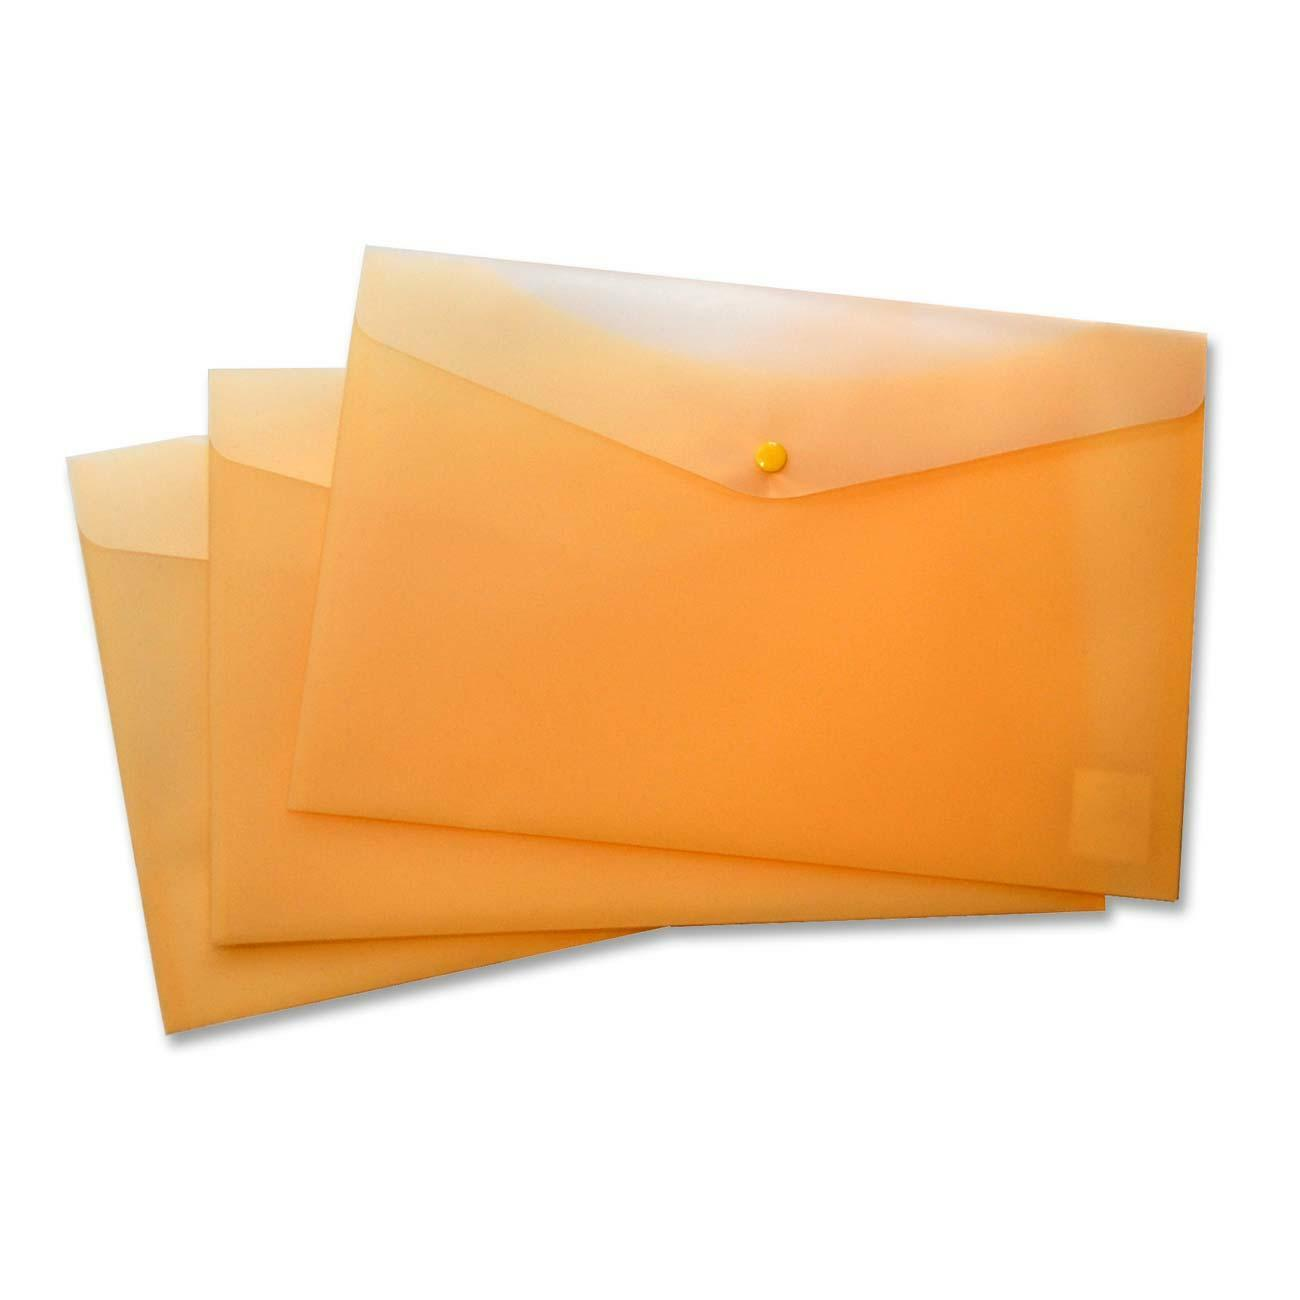 kamloops office systems office supplies envelopes forms